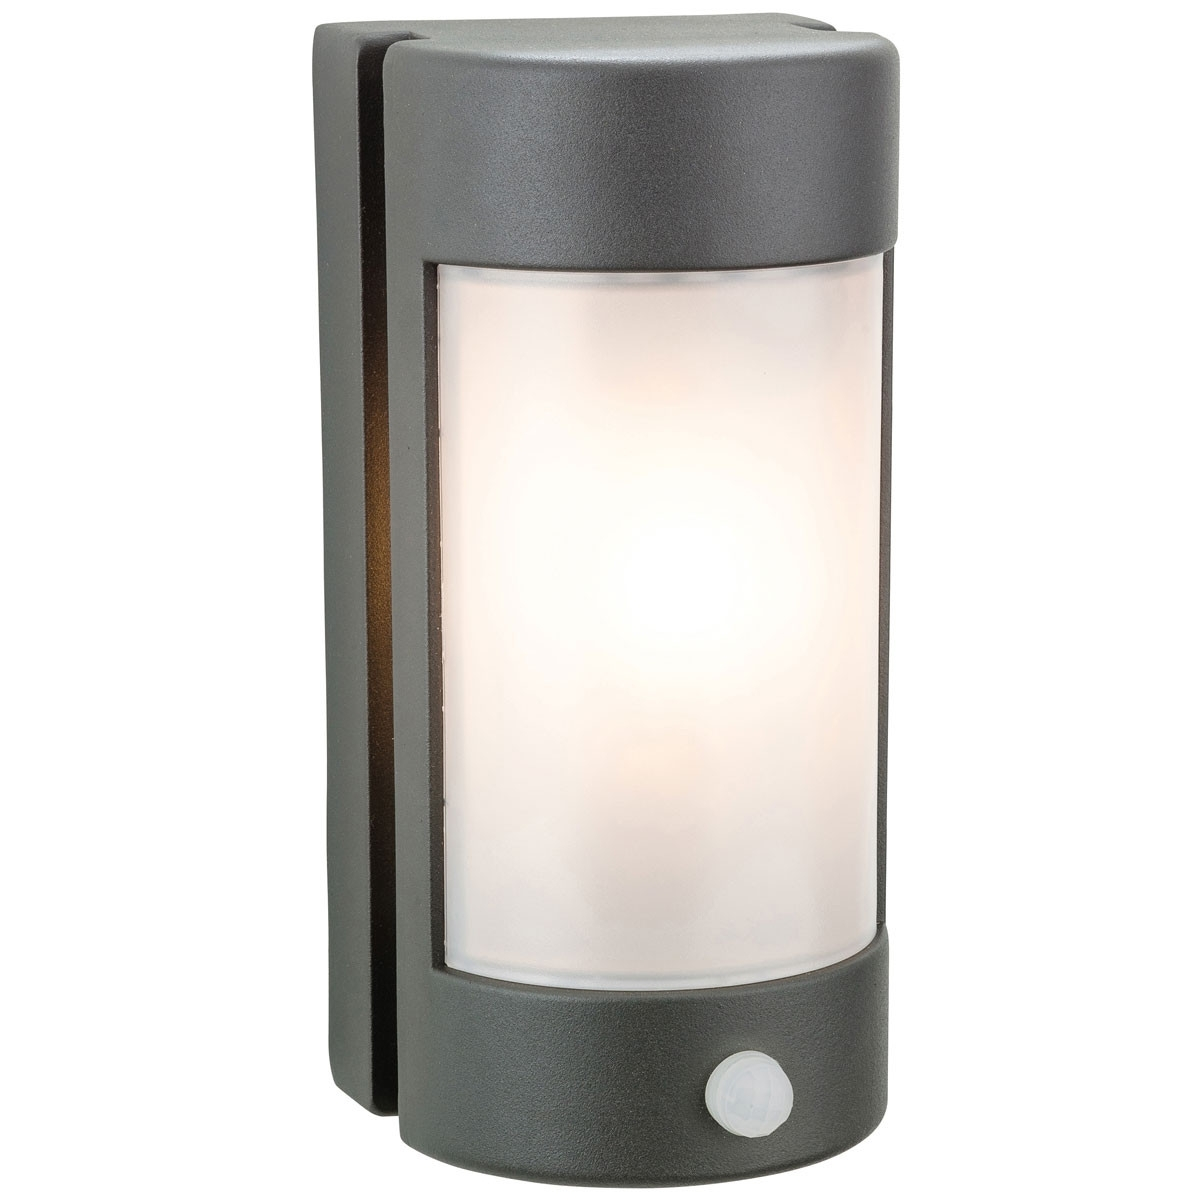 Diecast Aluminium Graphite Outdoor Wall Light With Pir Throughout Outdoor Led Wall Lights With Pir (#2 of 15)